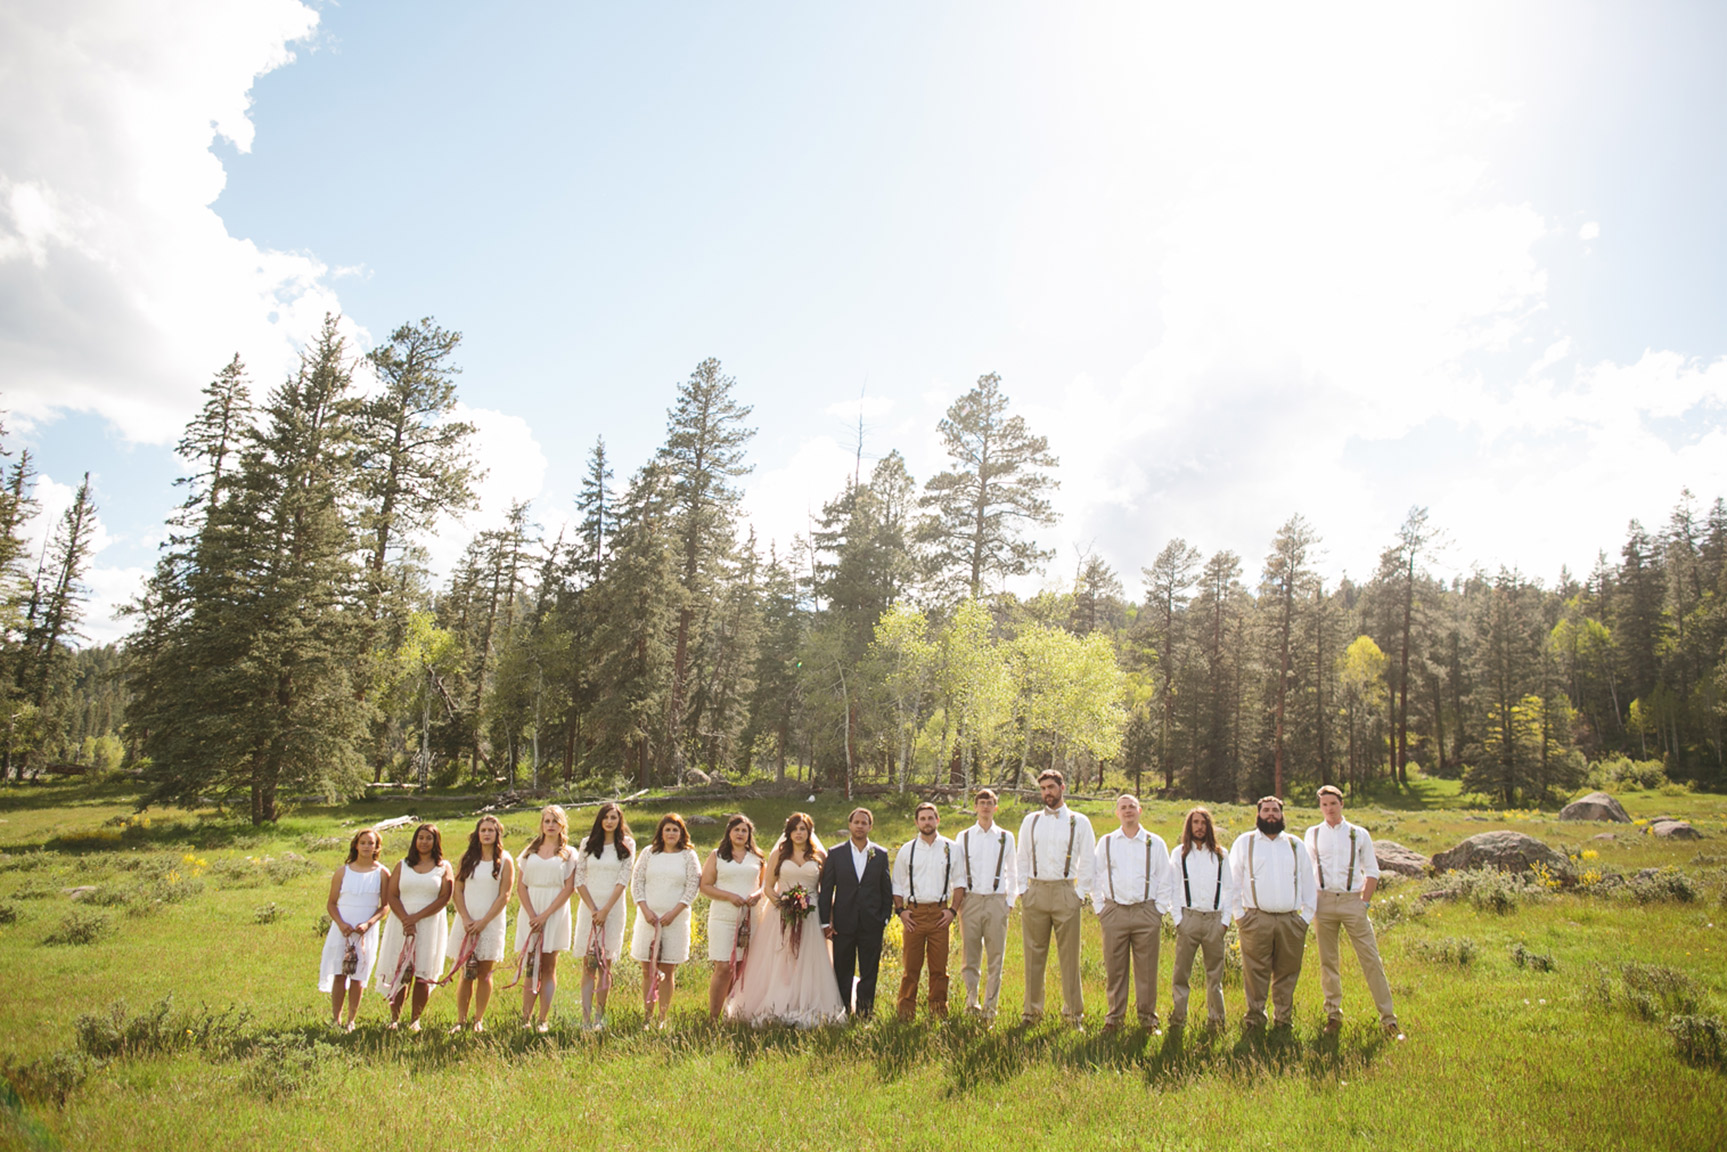 PhotobyBetsy-colorado-wedding33b.JPG